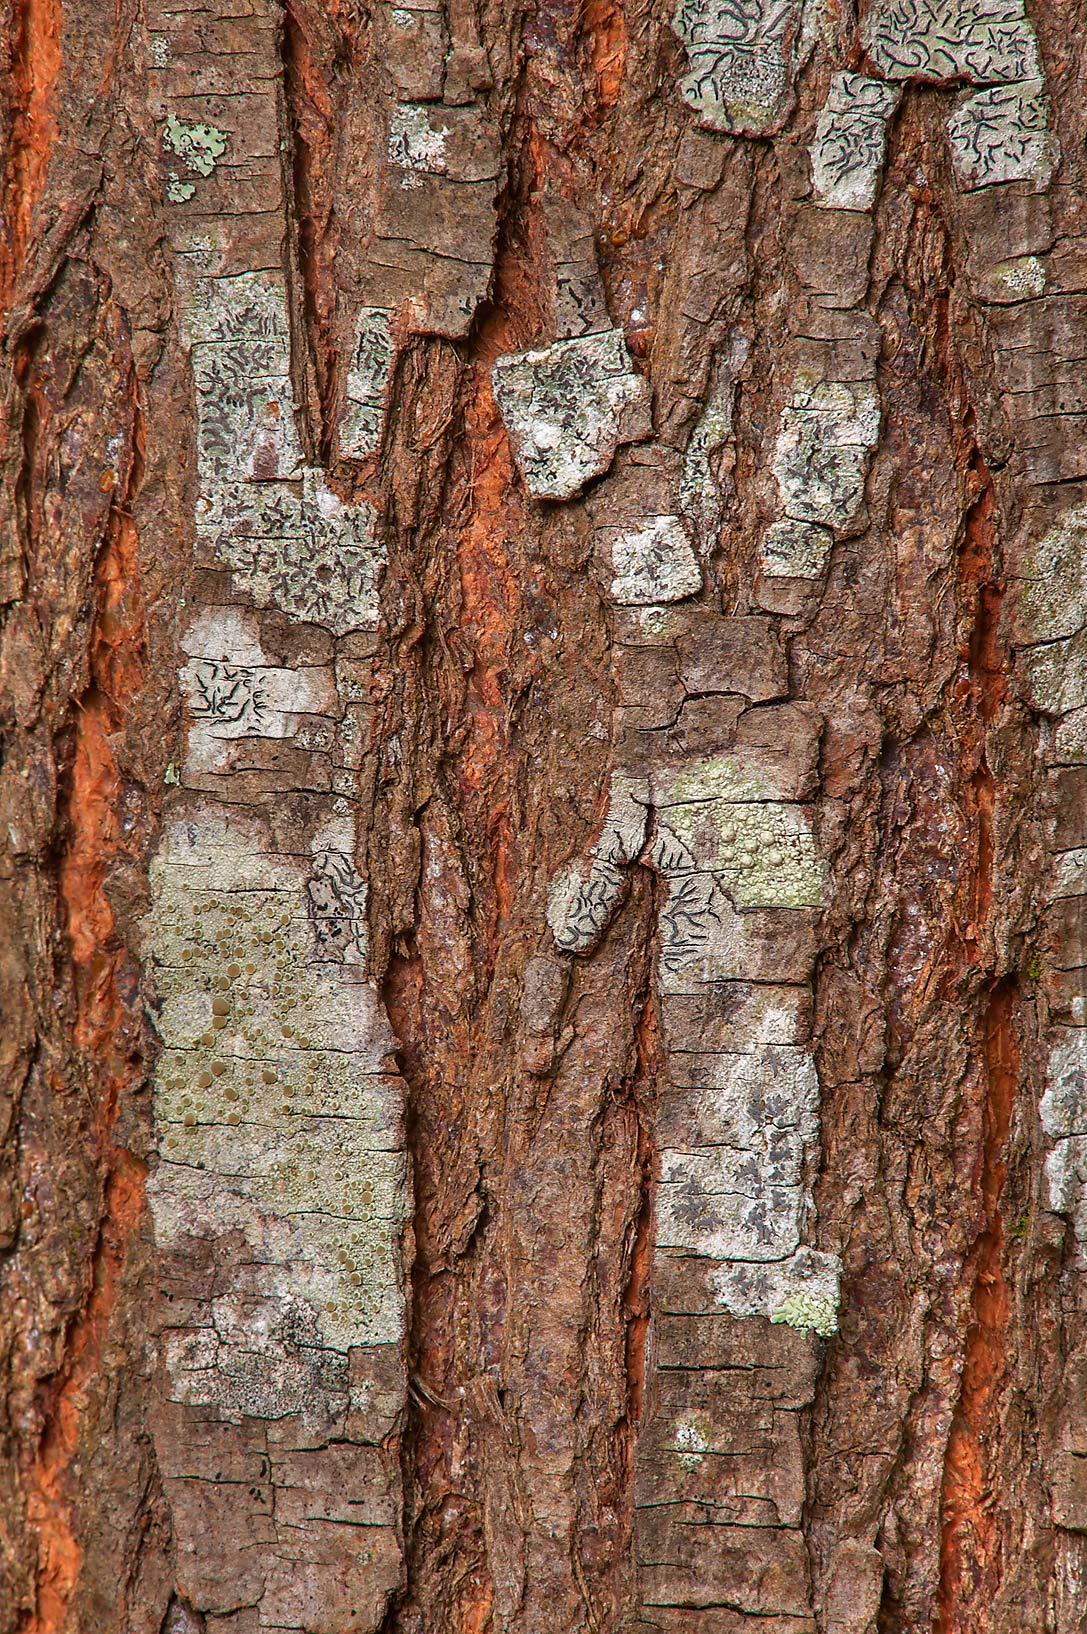 Brown tree bark on Racoon Run Trail in Lick Creek Park. College Station, Texas